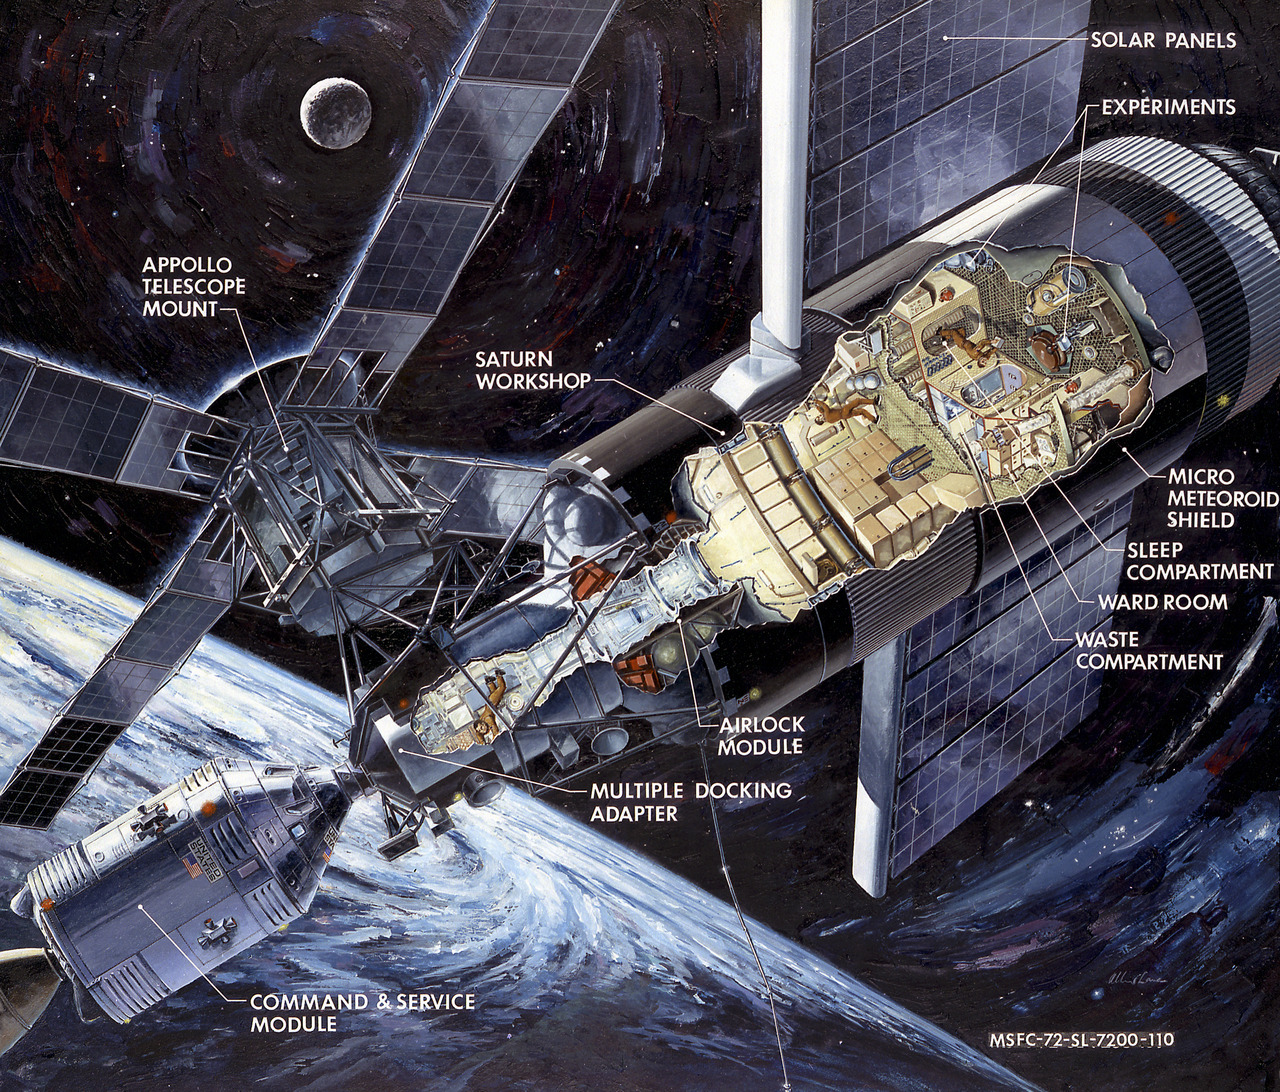 Skylab concept art from NASA, 1972.